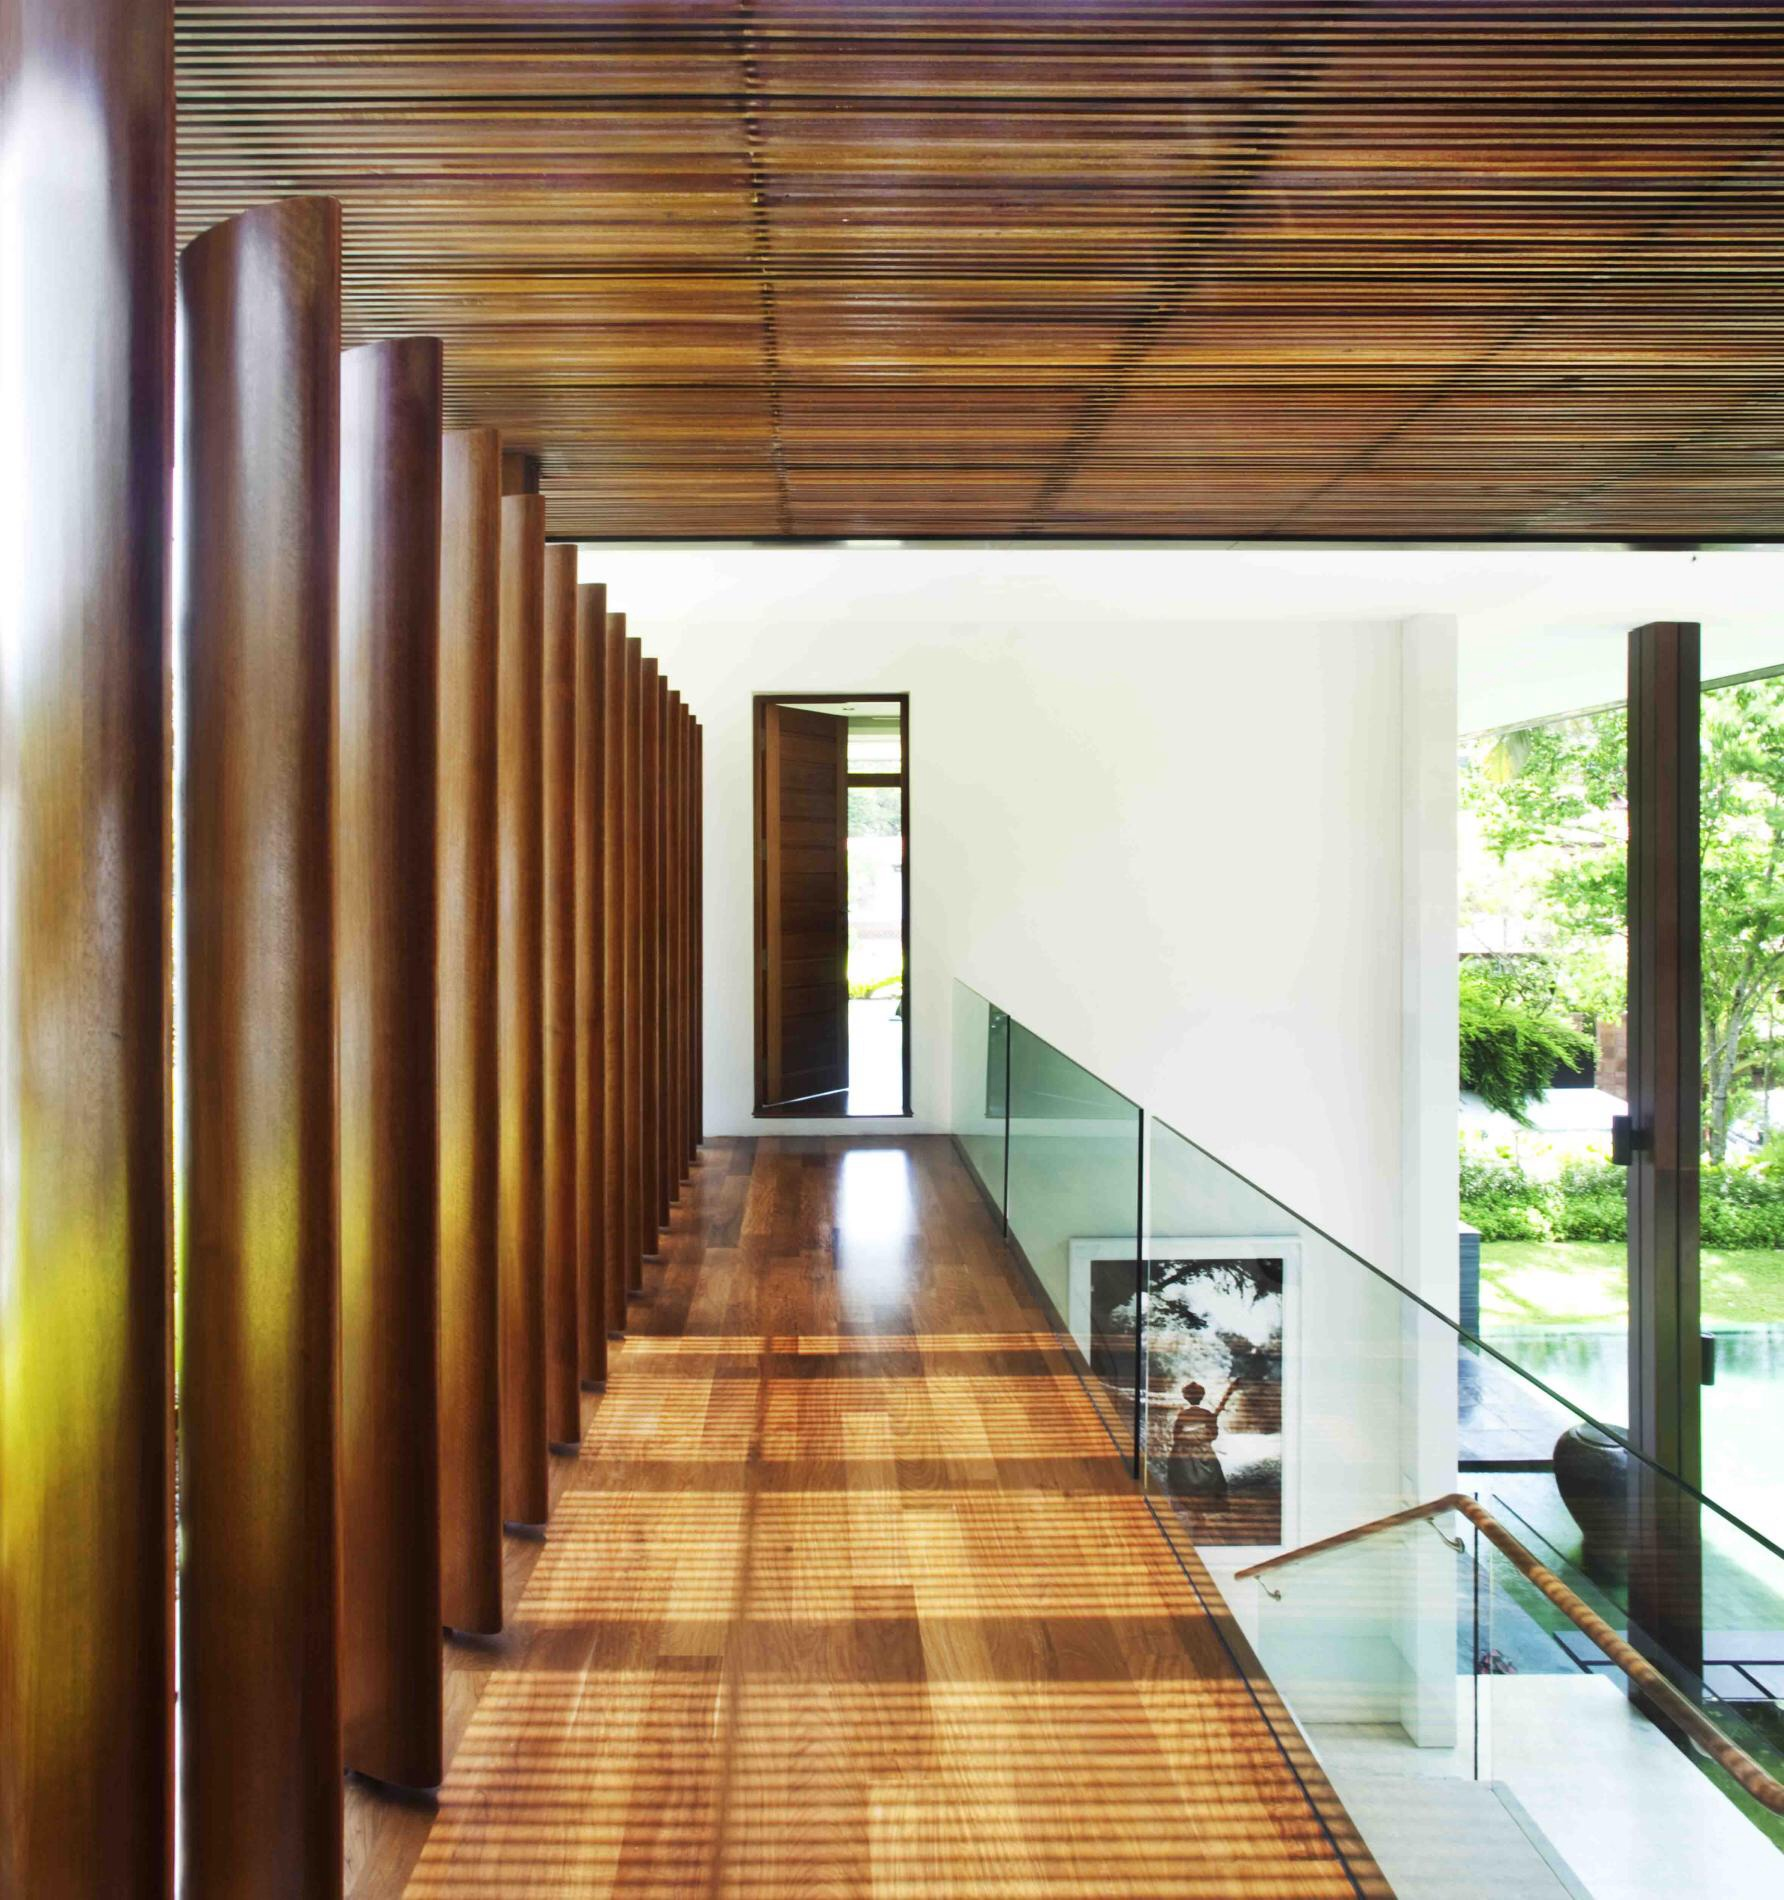 The Sun House By Guz Architects A Hevean Of Green In: Tropical Dream By Guz Architects, Singapore.